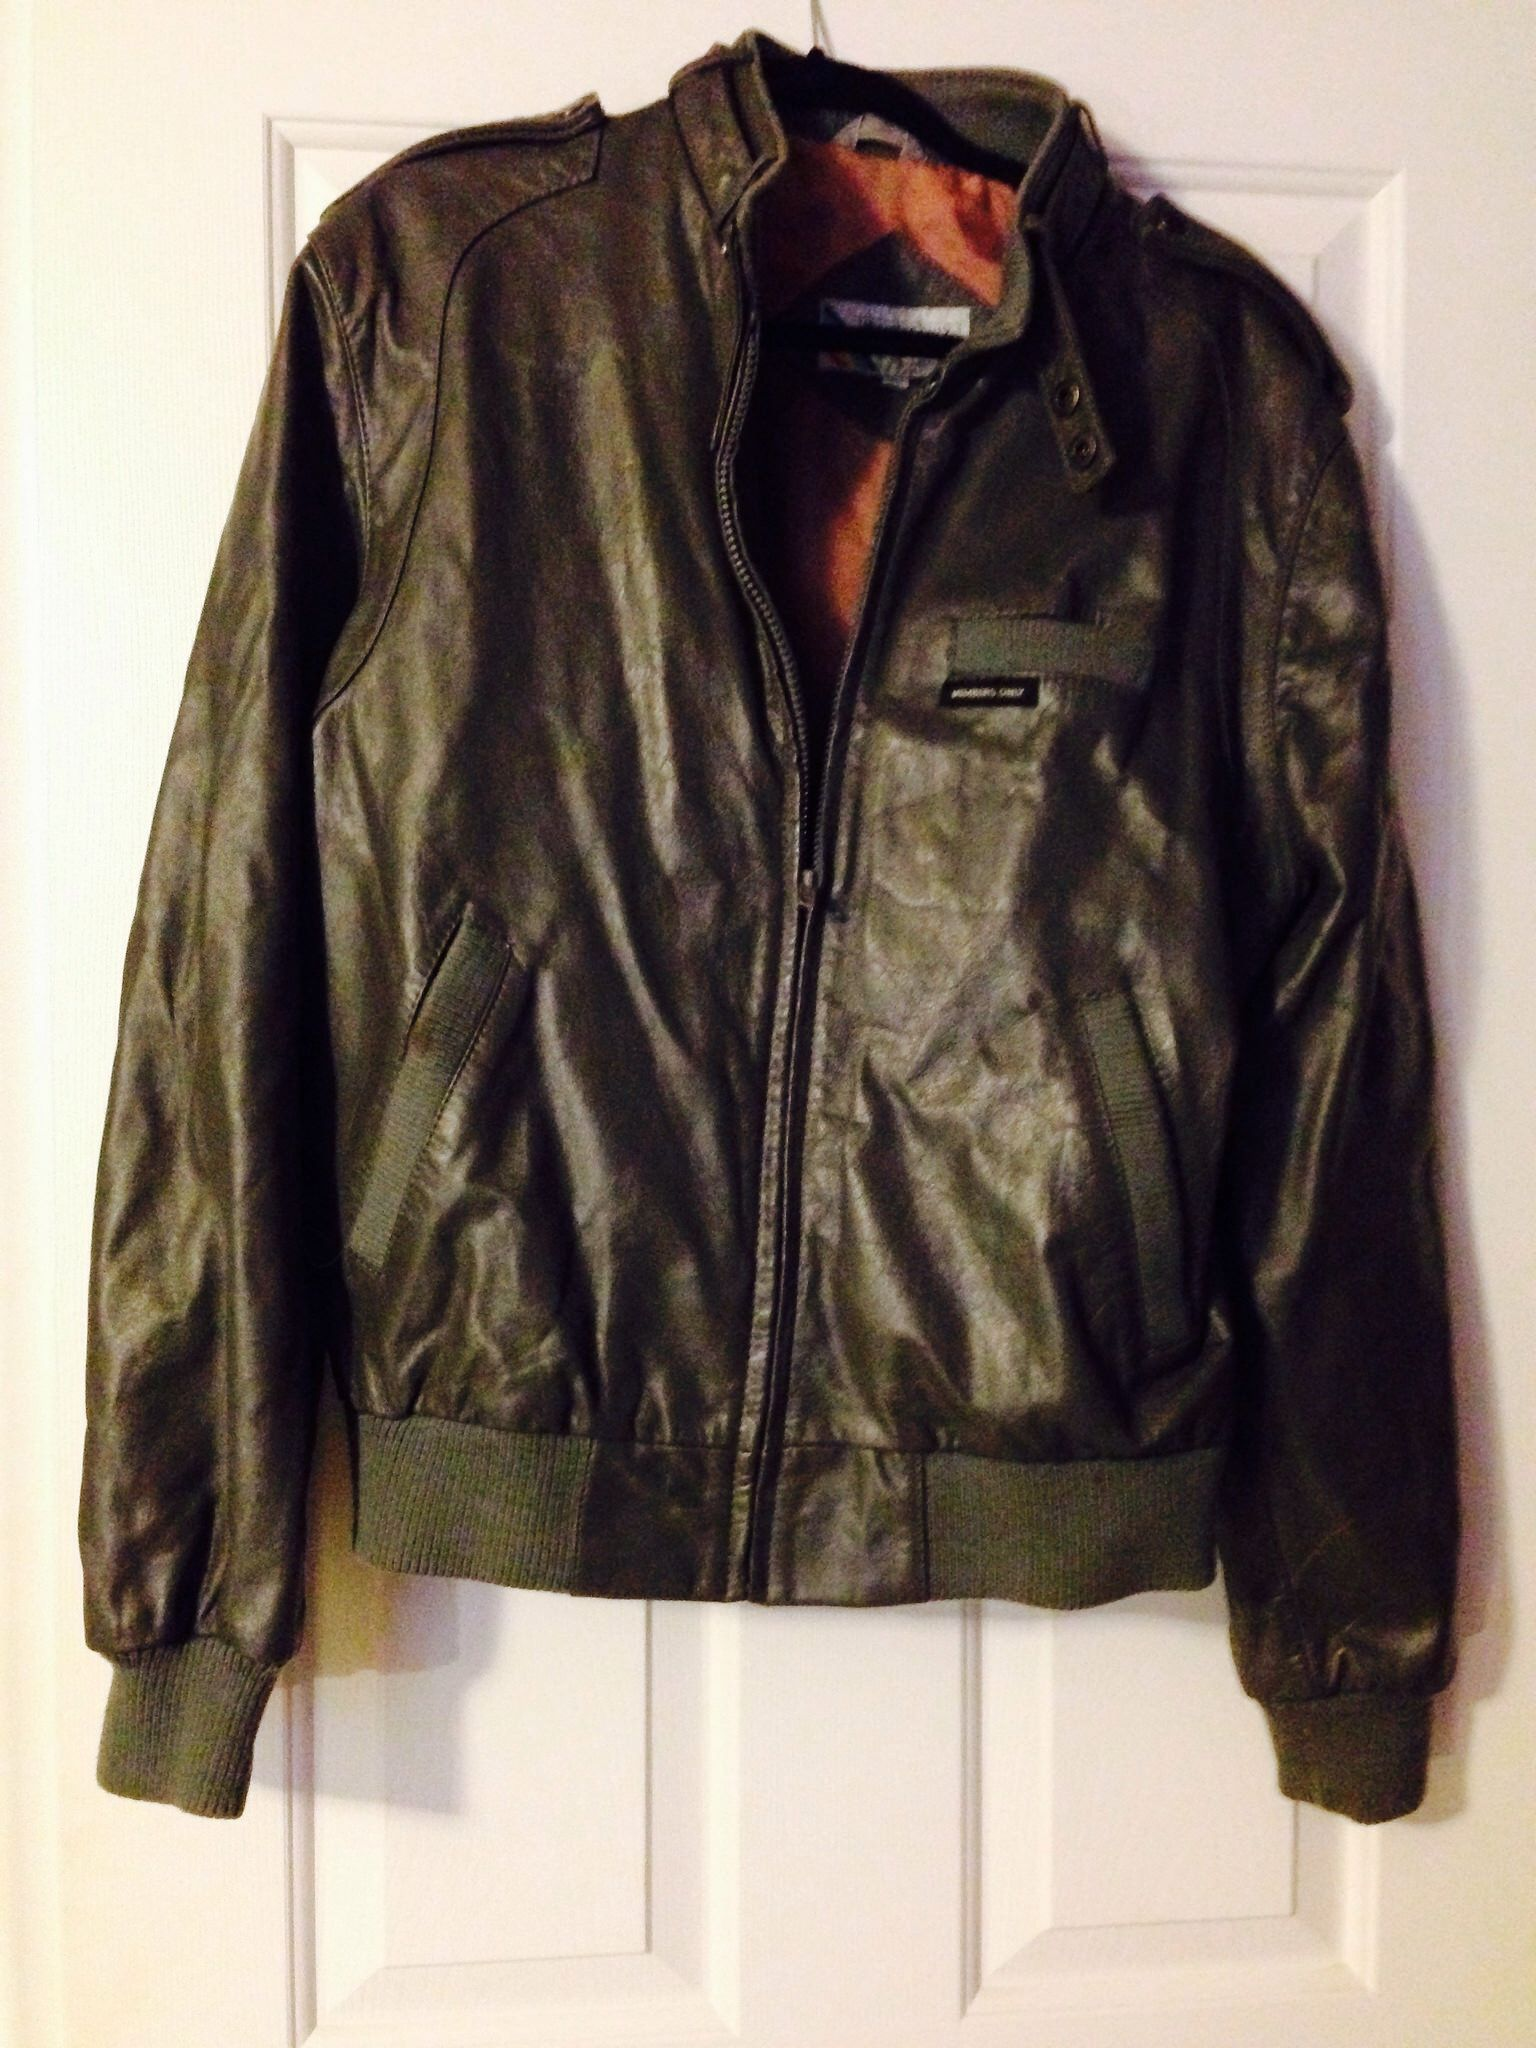 Vintage Members Only Leather Bomber Jacket Http Stores Ebay Com Old Crows Treasures 24 7 Rdc 1 Leather Jacket Leather Bomber Jacket Mens Outfits [ 2048 x 1536 Pixel ]